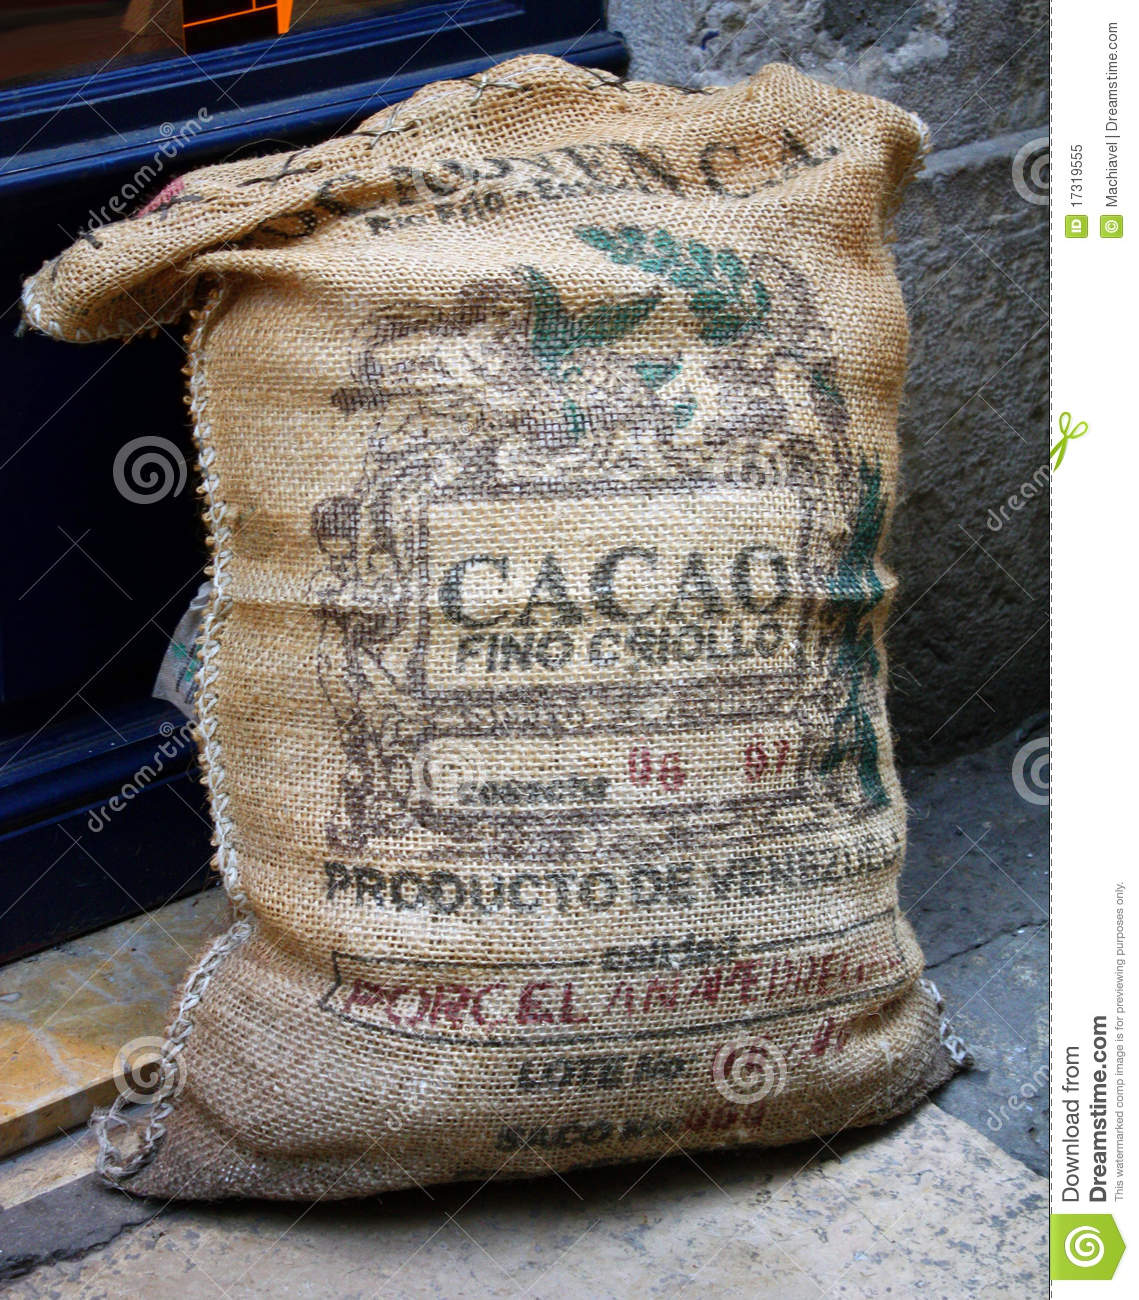 Cacao Bag Stock Image Image Of Bean Tree Manufacture